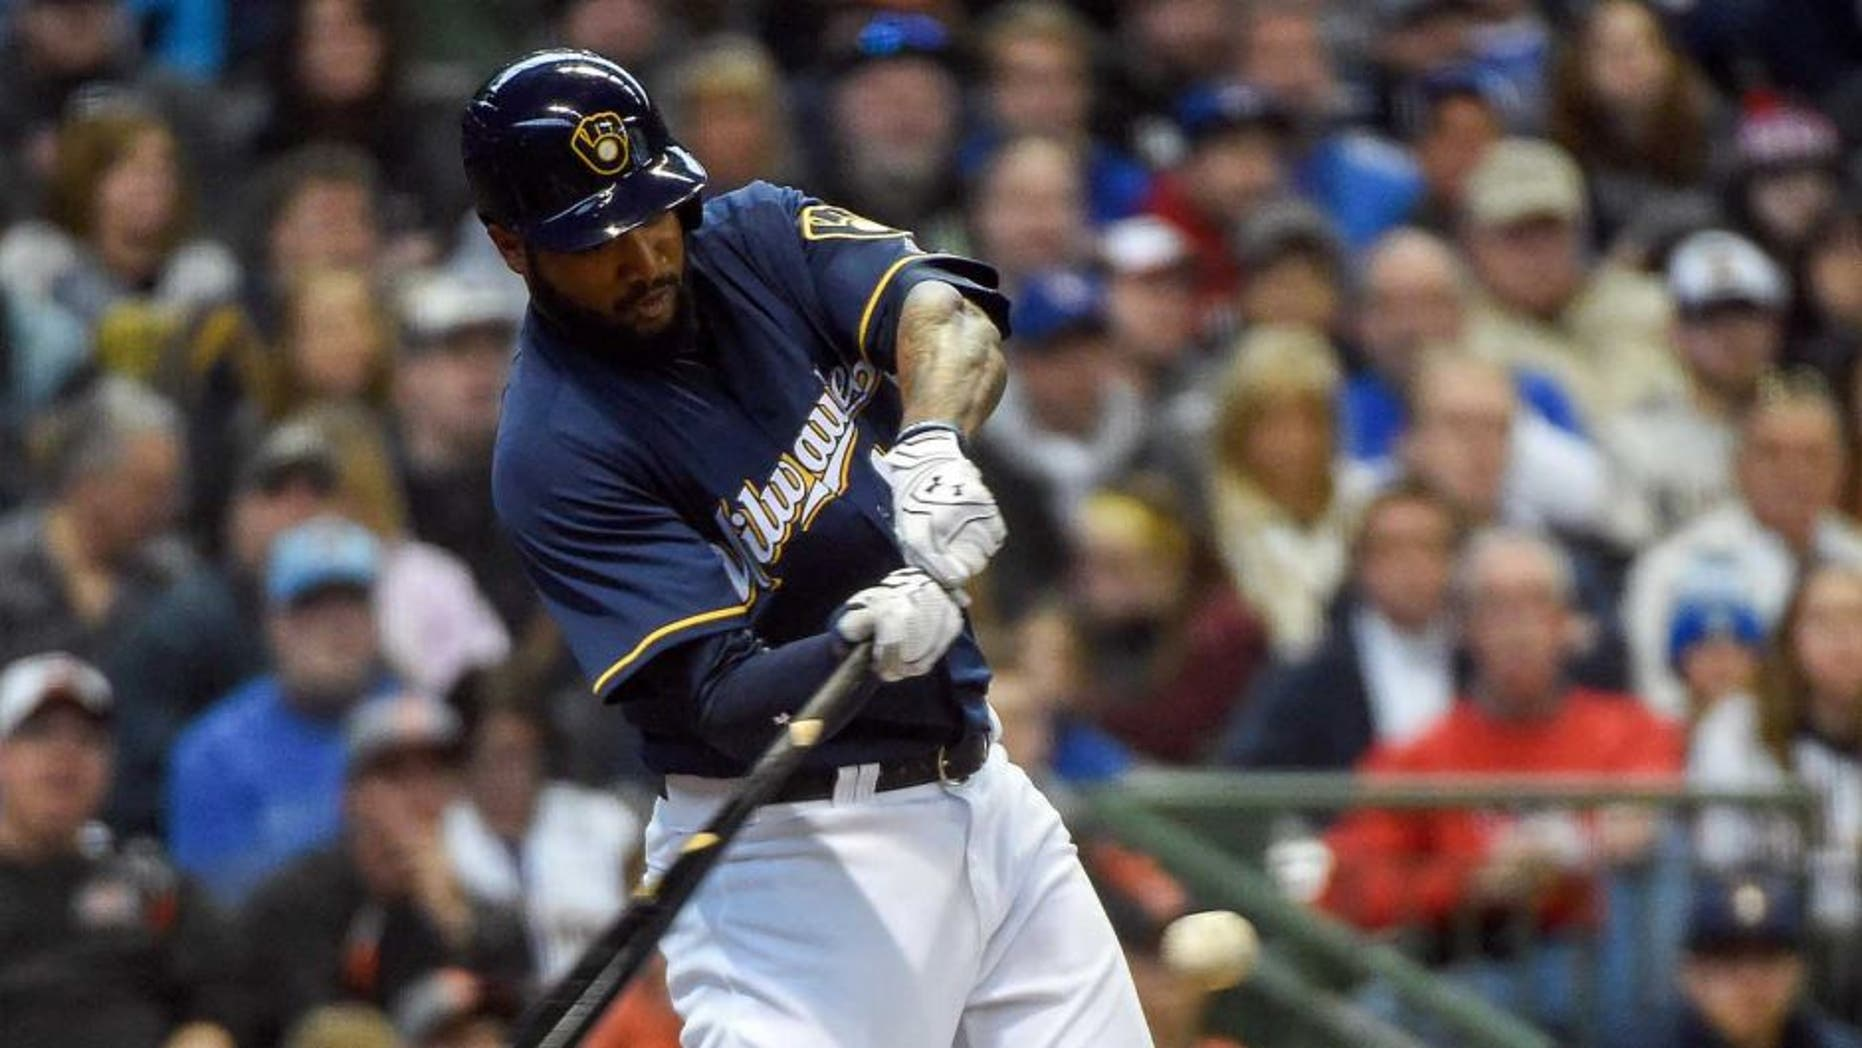 Sunday, April 10: Milwaukee Brewers right fielder Domingo Santana drives in a run with a double in the fourth inning against the Houston Astros at Miller Park in Milwaukee. The Brewers took the series with a 3-2 win.